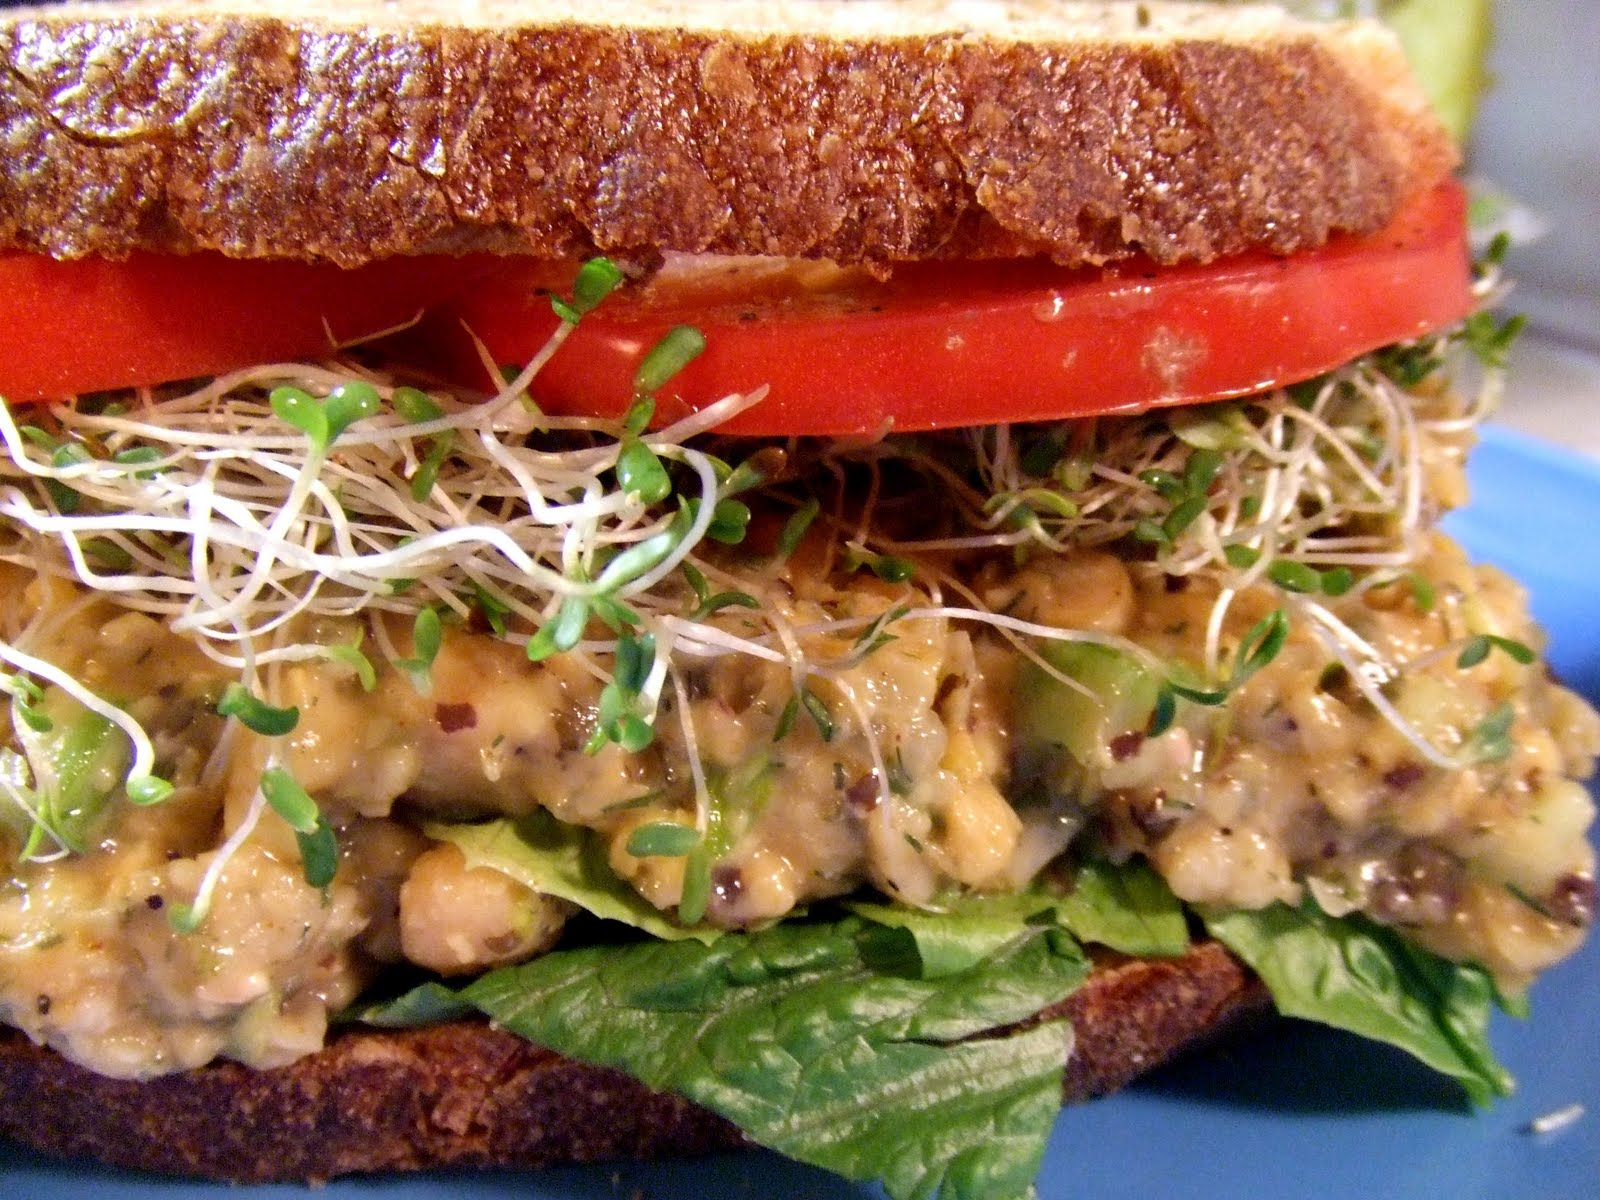 Chickpea 'Tuna' Salad Sandwich